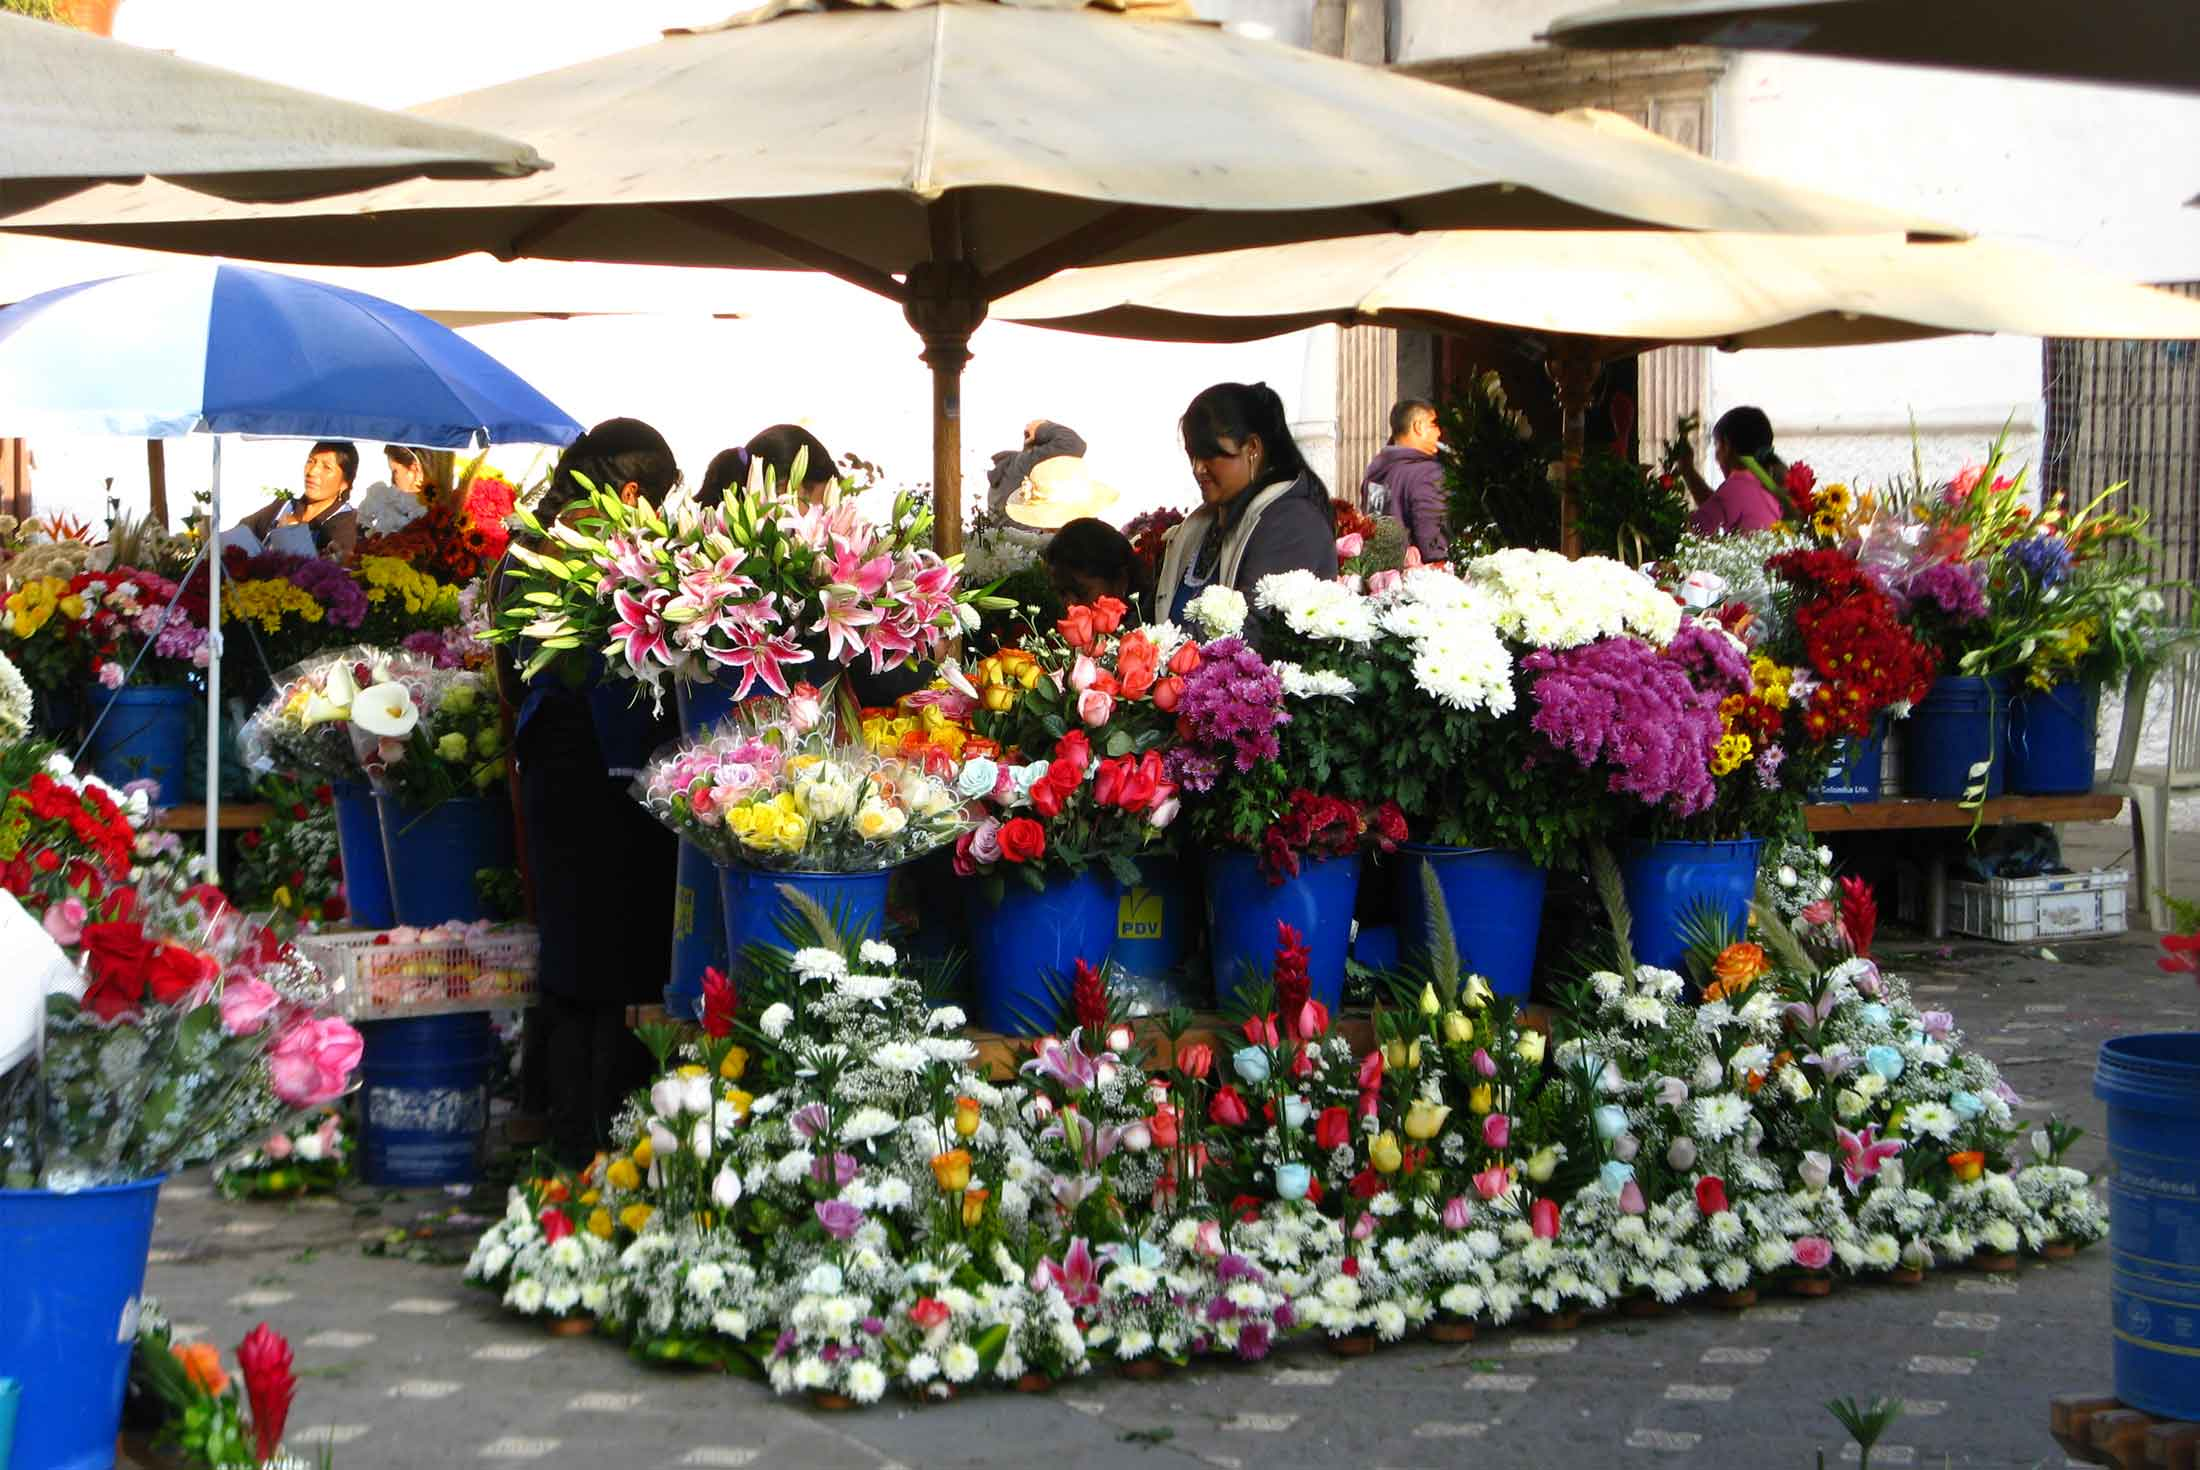 Colombia & the Medellin Flower Festival - Limited Edition 3